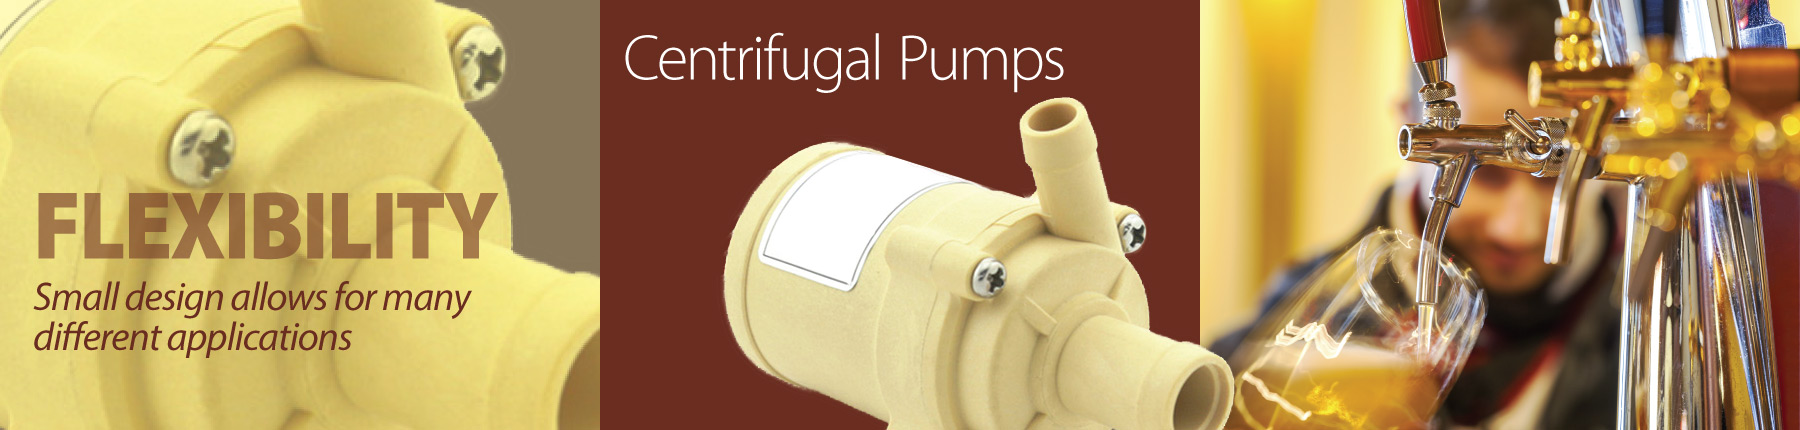 Home-Slider-Centrifugal-Pumps